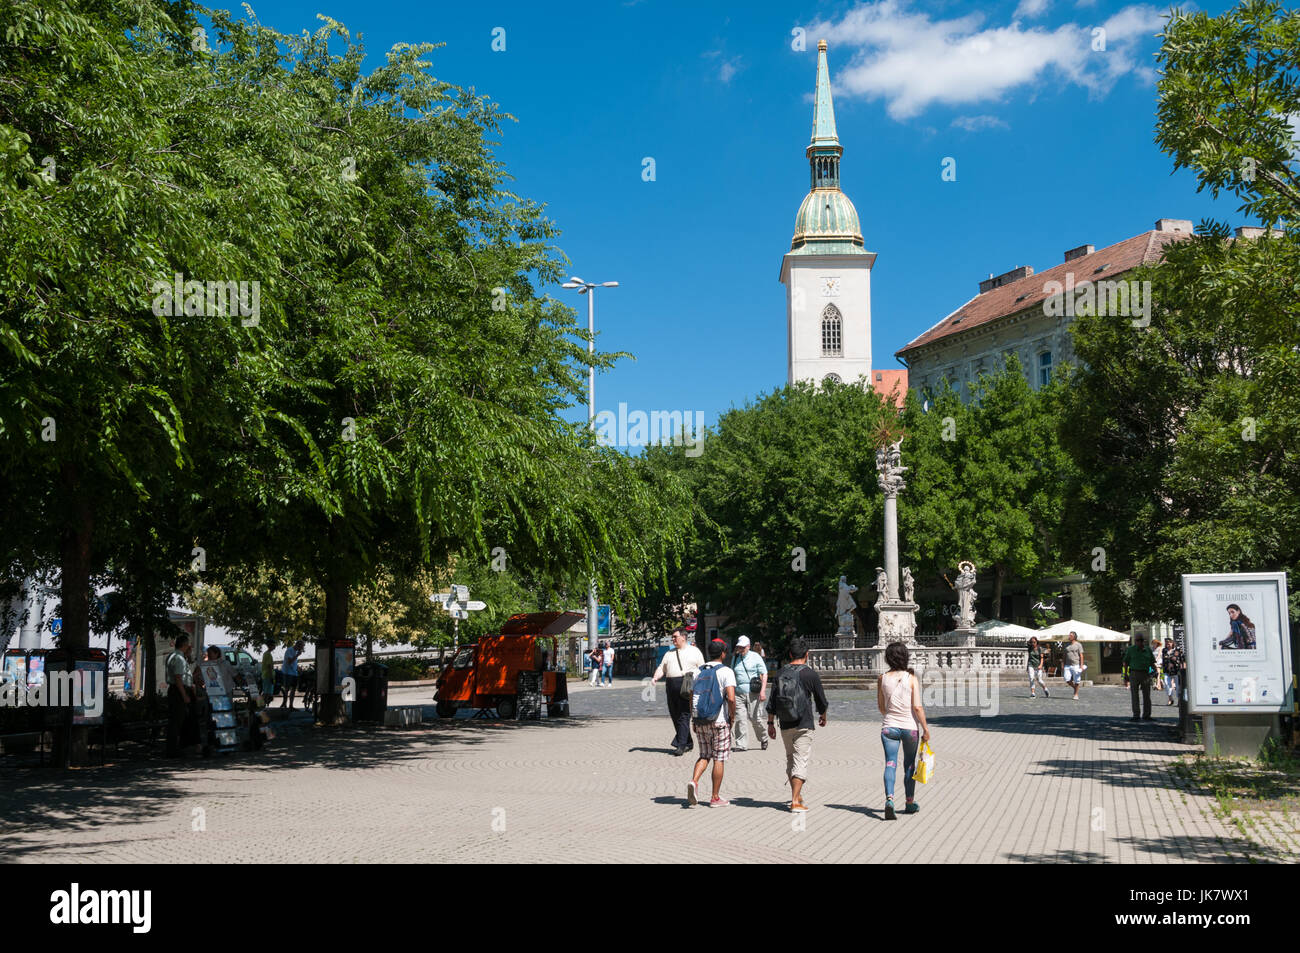 Rybne Square and the St Martin's Cathedral, Bratislava, Slovakia - Stock Image